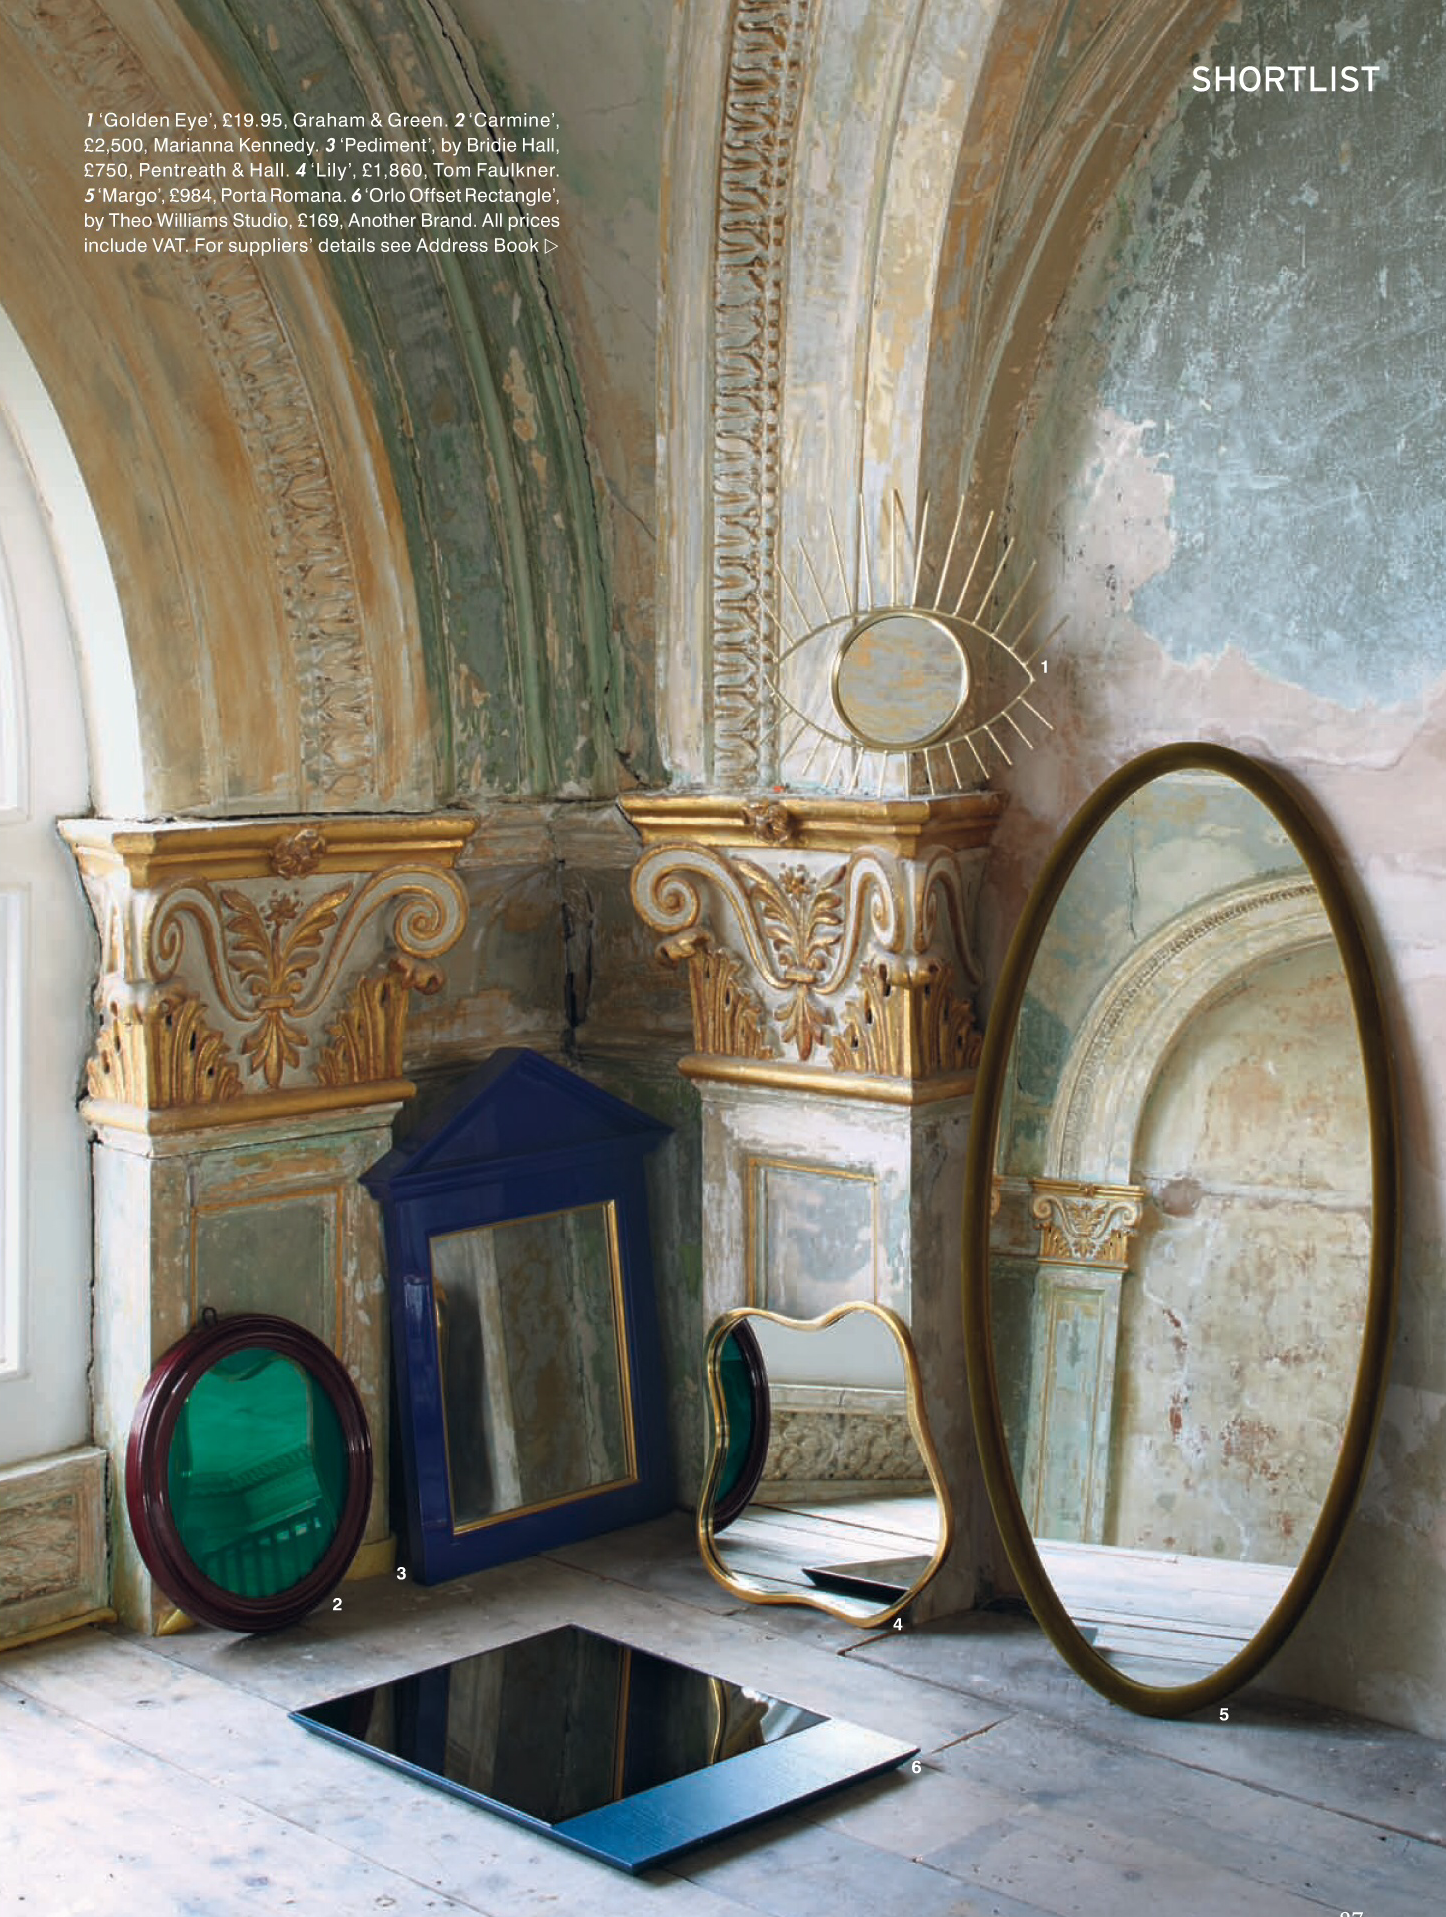 The World of Interiors - October 2018